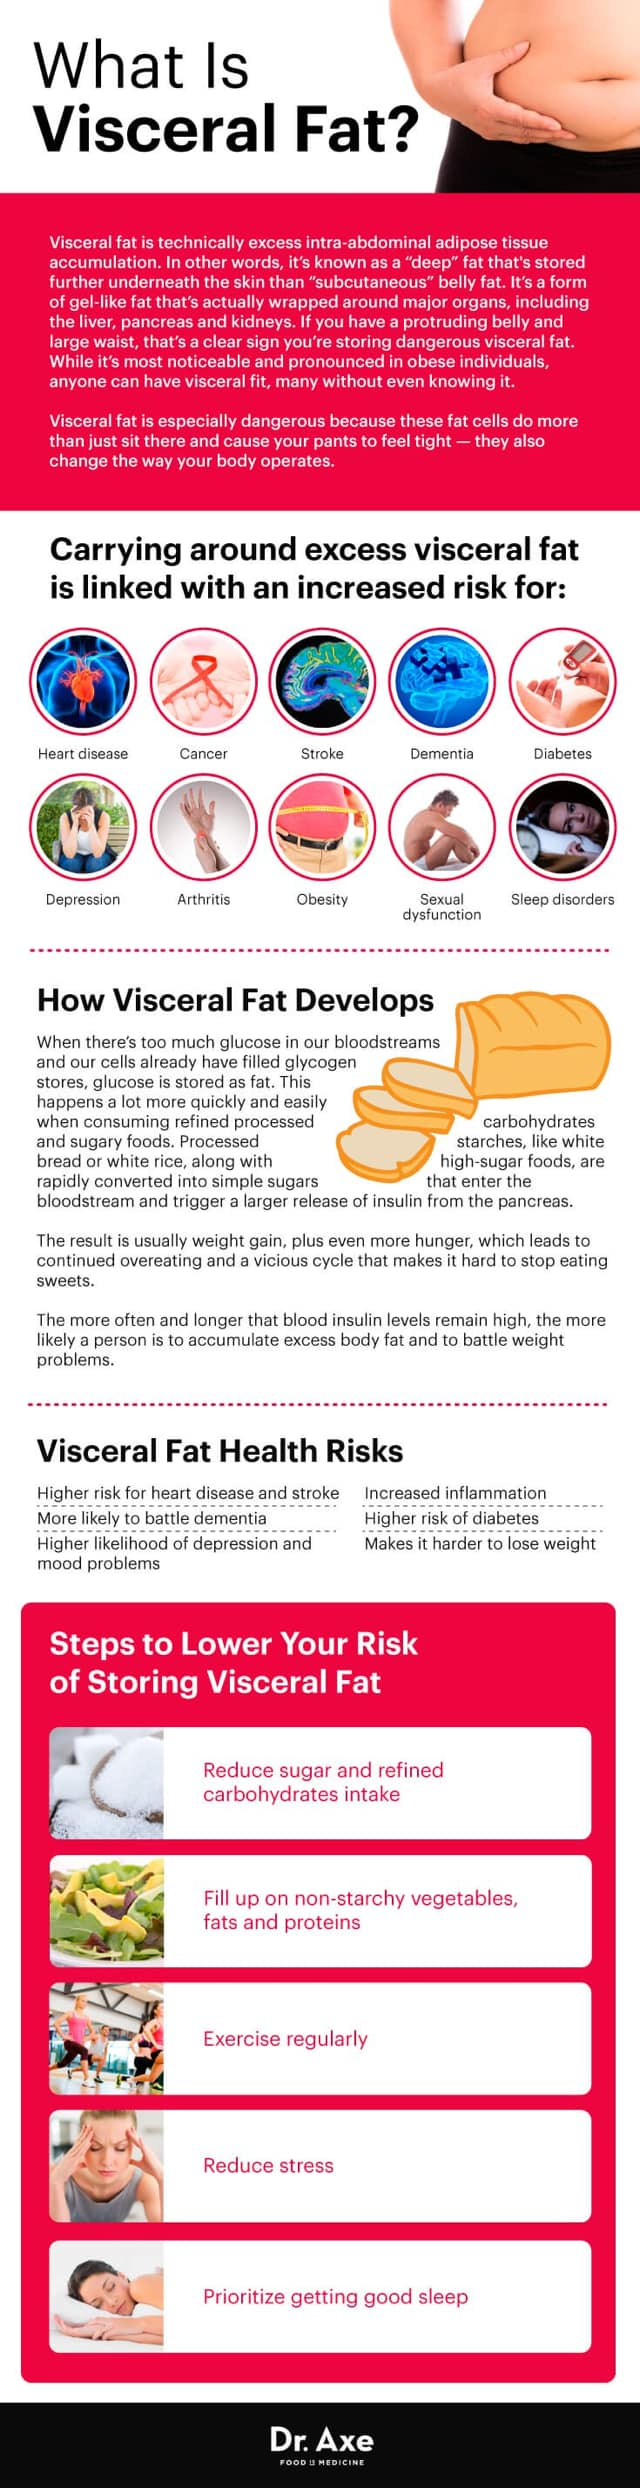 What is Visceral Fat? Infographic